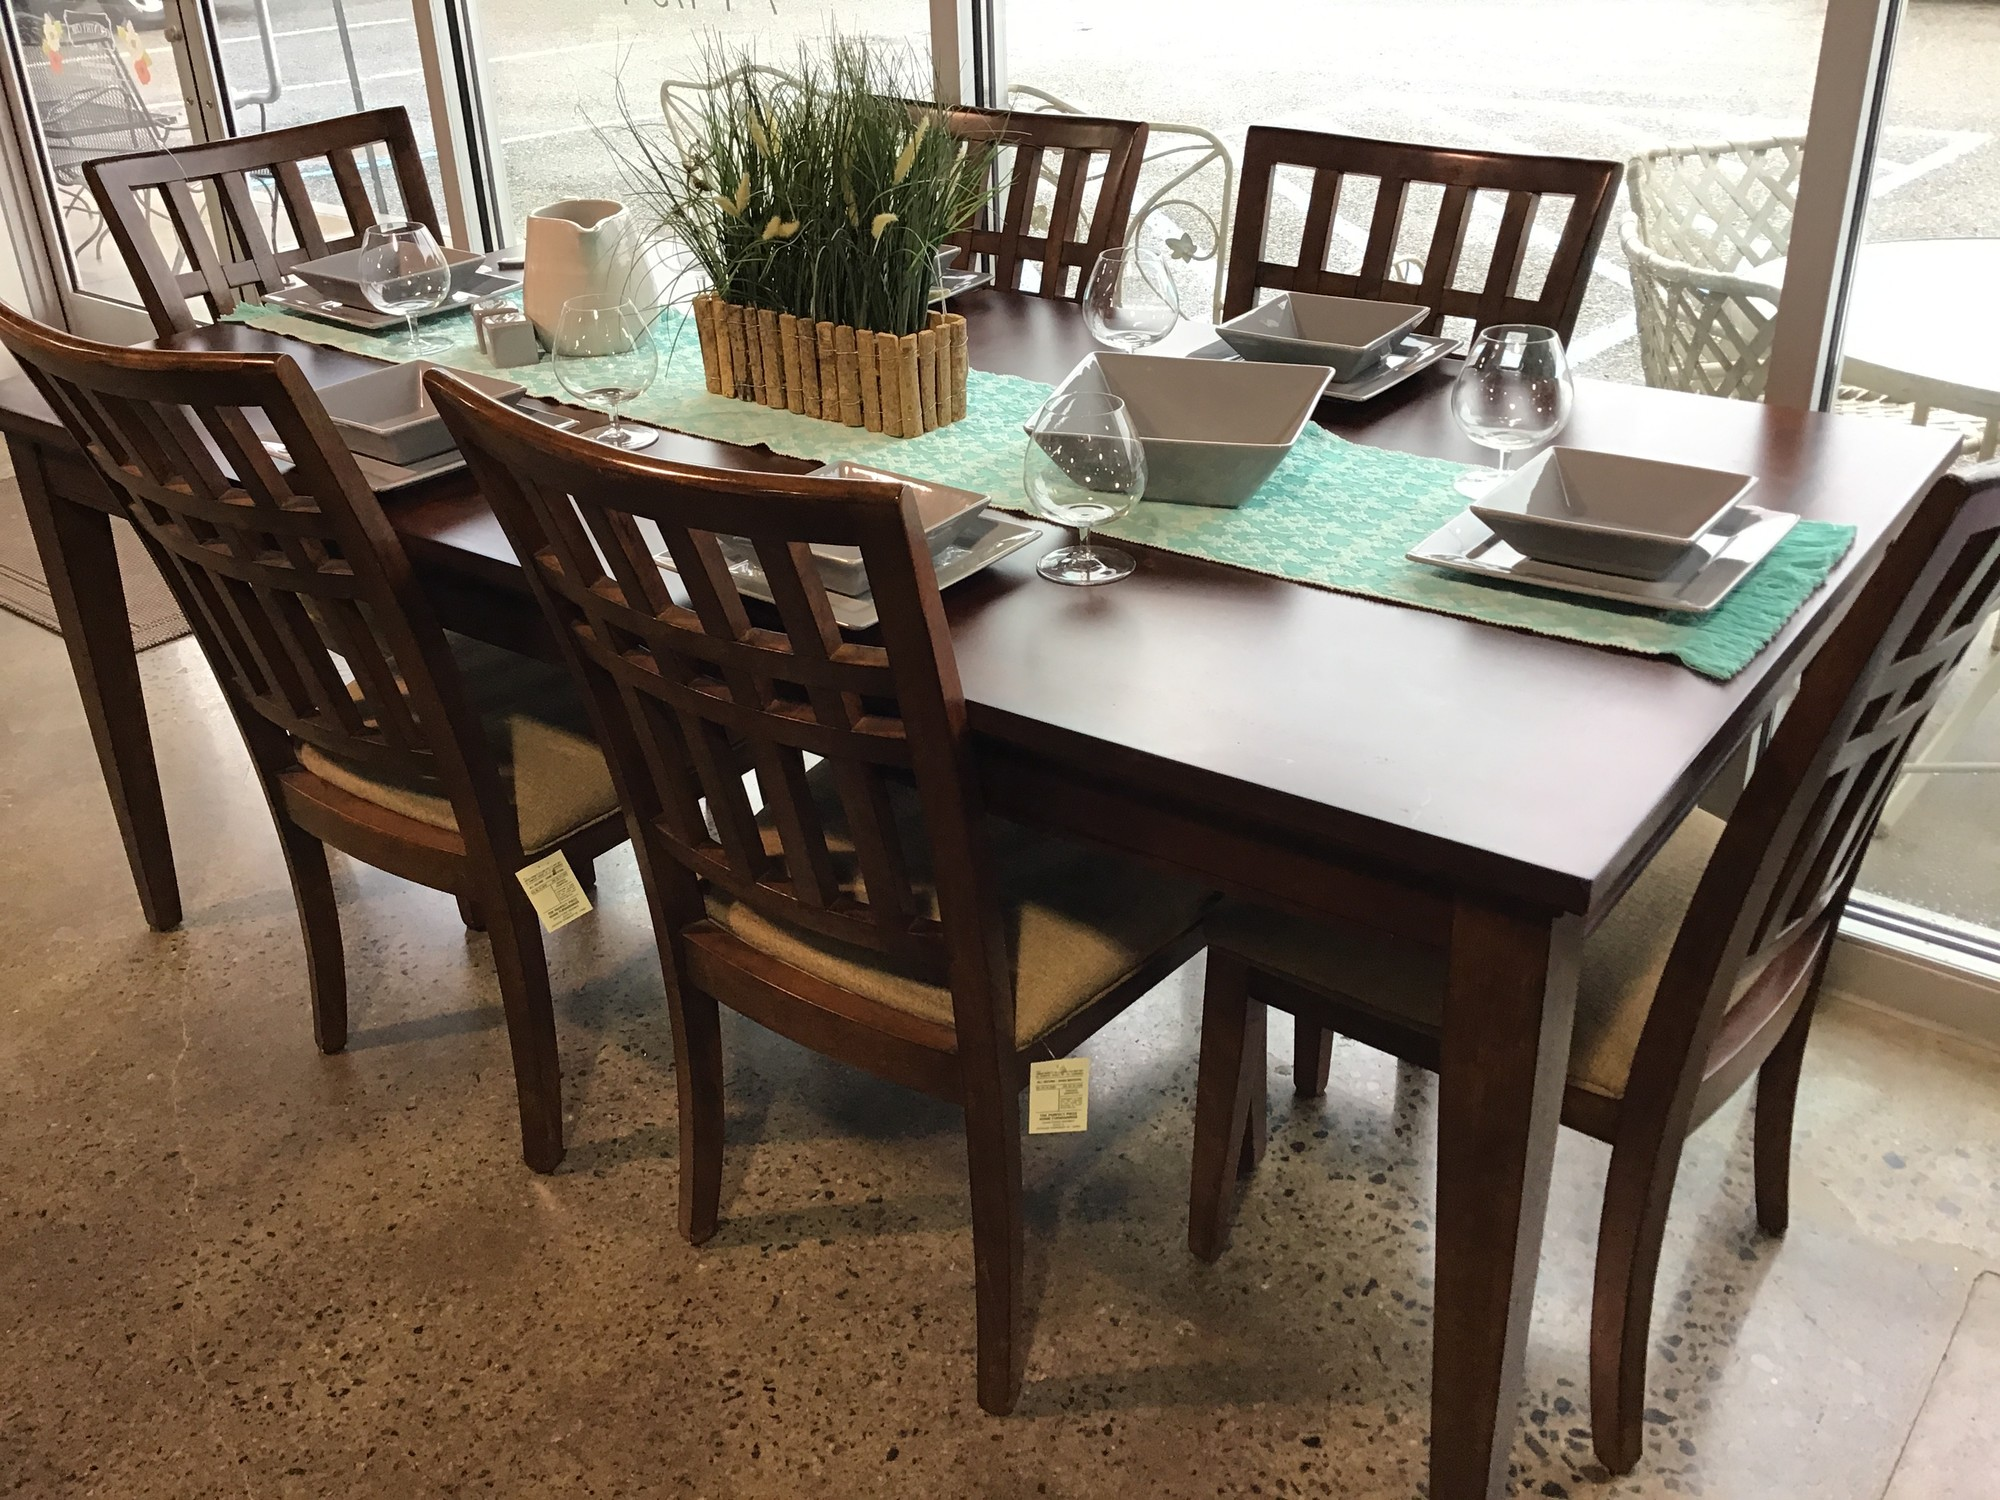 "This rectangular dining room table can comfortably seat 6-8 people and comes with 6 upholstered chairs. It can be used with our without the leaf, depending on the size of your room. The chairs are upholstered in a neutral tan fabric on the seats with a wooden back. The set is from Legacy Classics Furniture.<br /> Dimensions without leaf are 60"" x 40"" x 30""<br /> Dimensions with leaf are 78"" x 40"" x 30"""